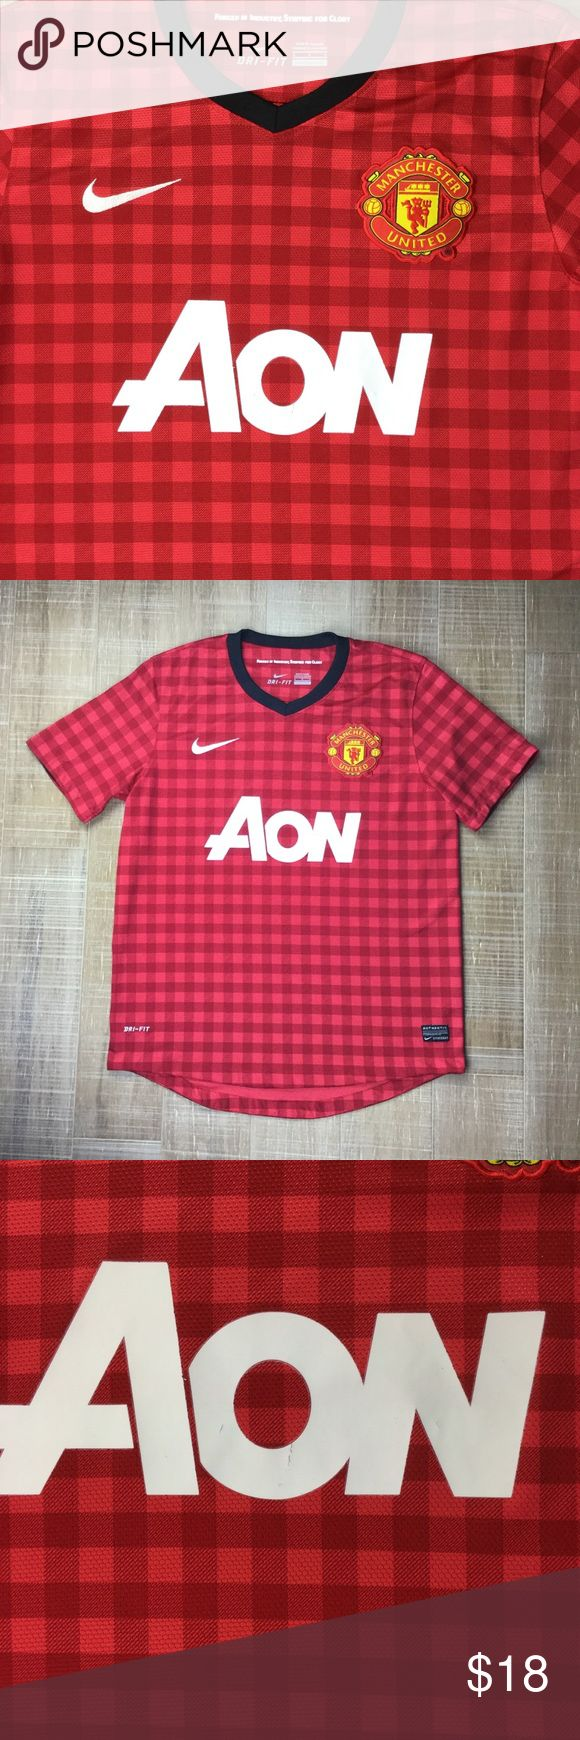 NIKE Manchester United Plaid Home Soccer Jersey Nike Dri-Fit Manchester United Home Plaid Soccer Jersey, Sz Small. Manchester United badge over the heart. Good pre-owned condition. Has a few small flaws—slight cracking in AON lettering (photo 3), small pinhole on seem of sleeve (photo 6), some small interior snags in front (not very visible when wearing; photo 7) & one very small part of hem seen underneath is unattached (photo 8). No fabric contents tag—100% recycled poly. Smoke free home…